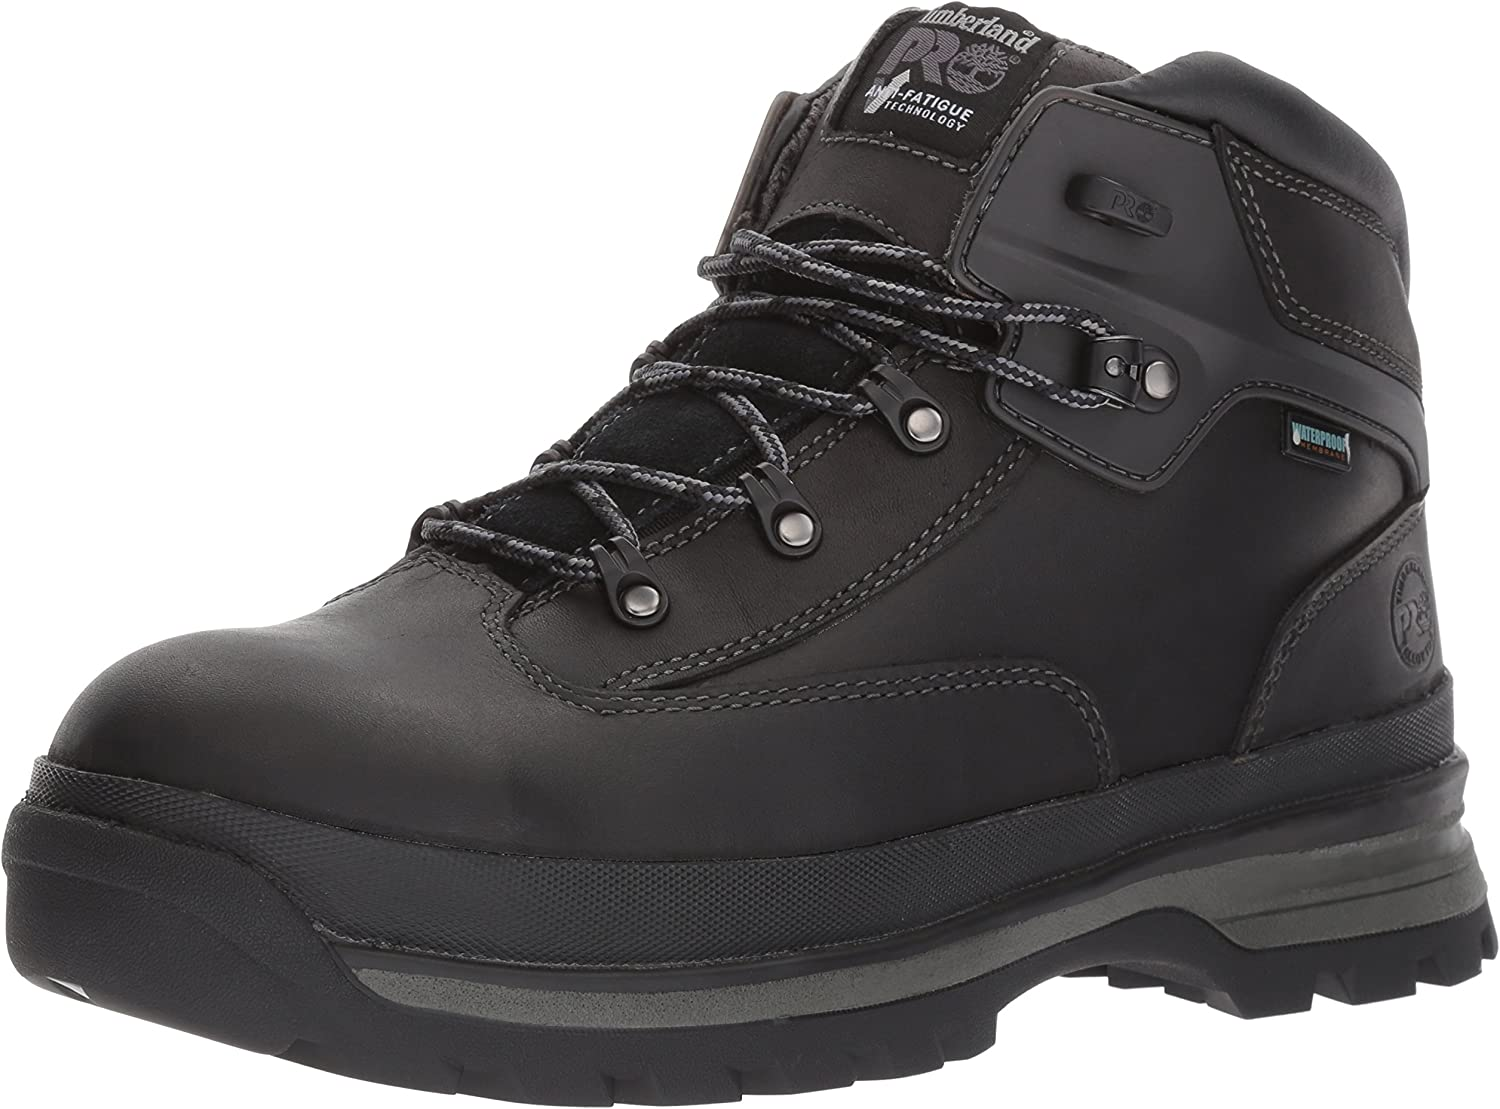 Timberland PRO Men's Euro We OFFer at wholesale cheap prices Hiker Safety Waterproof Indu Alloy Toe